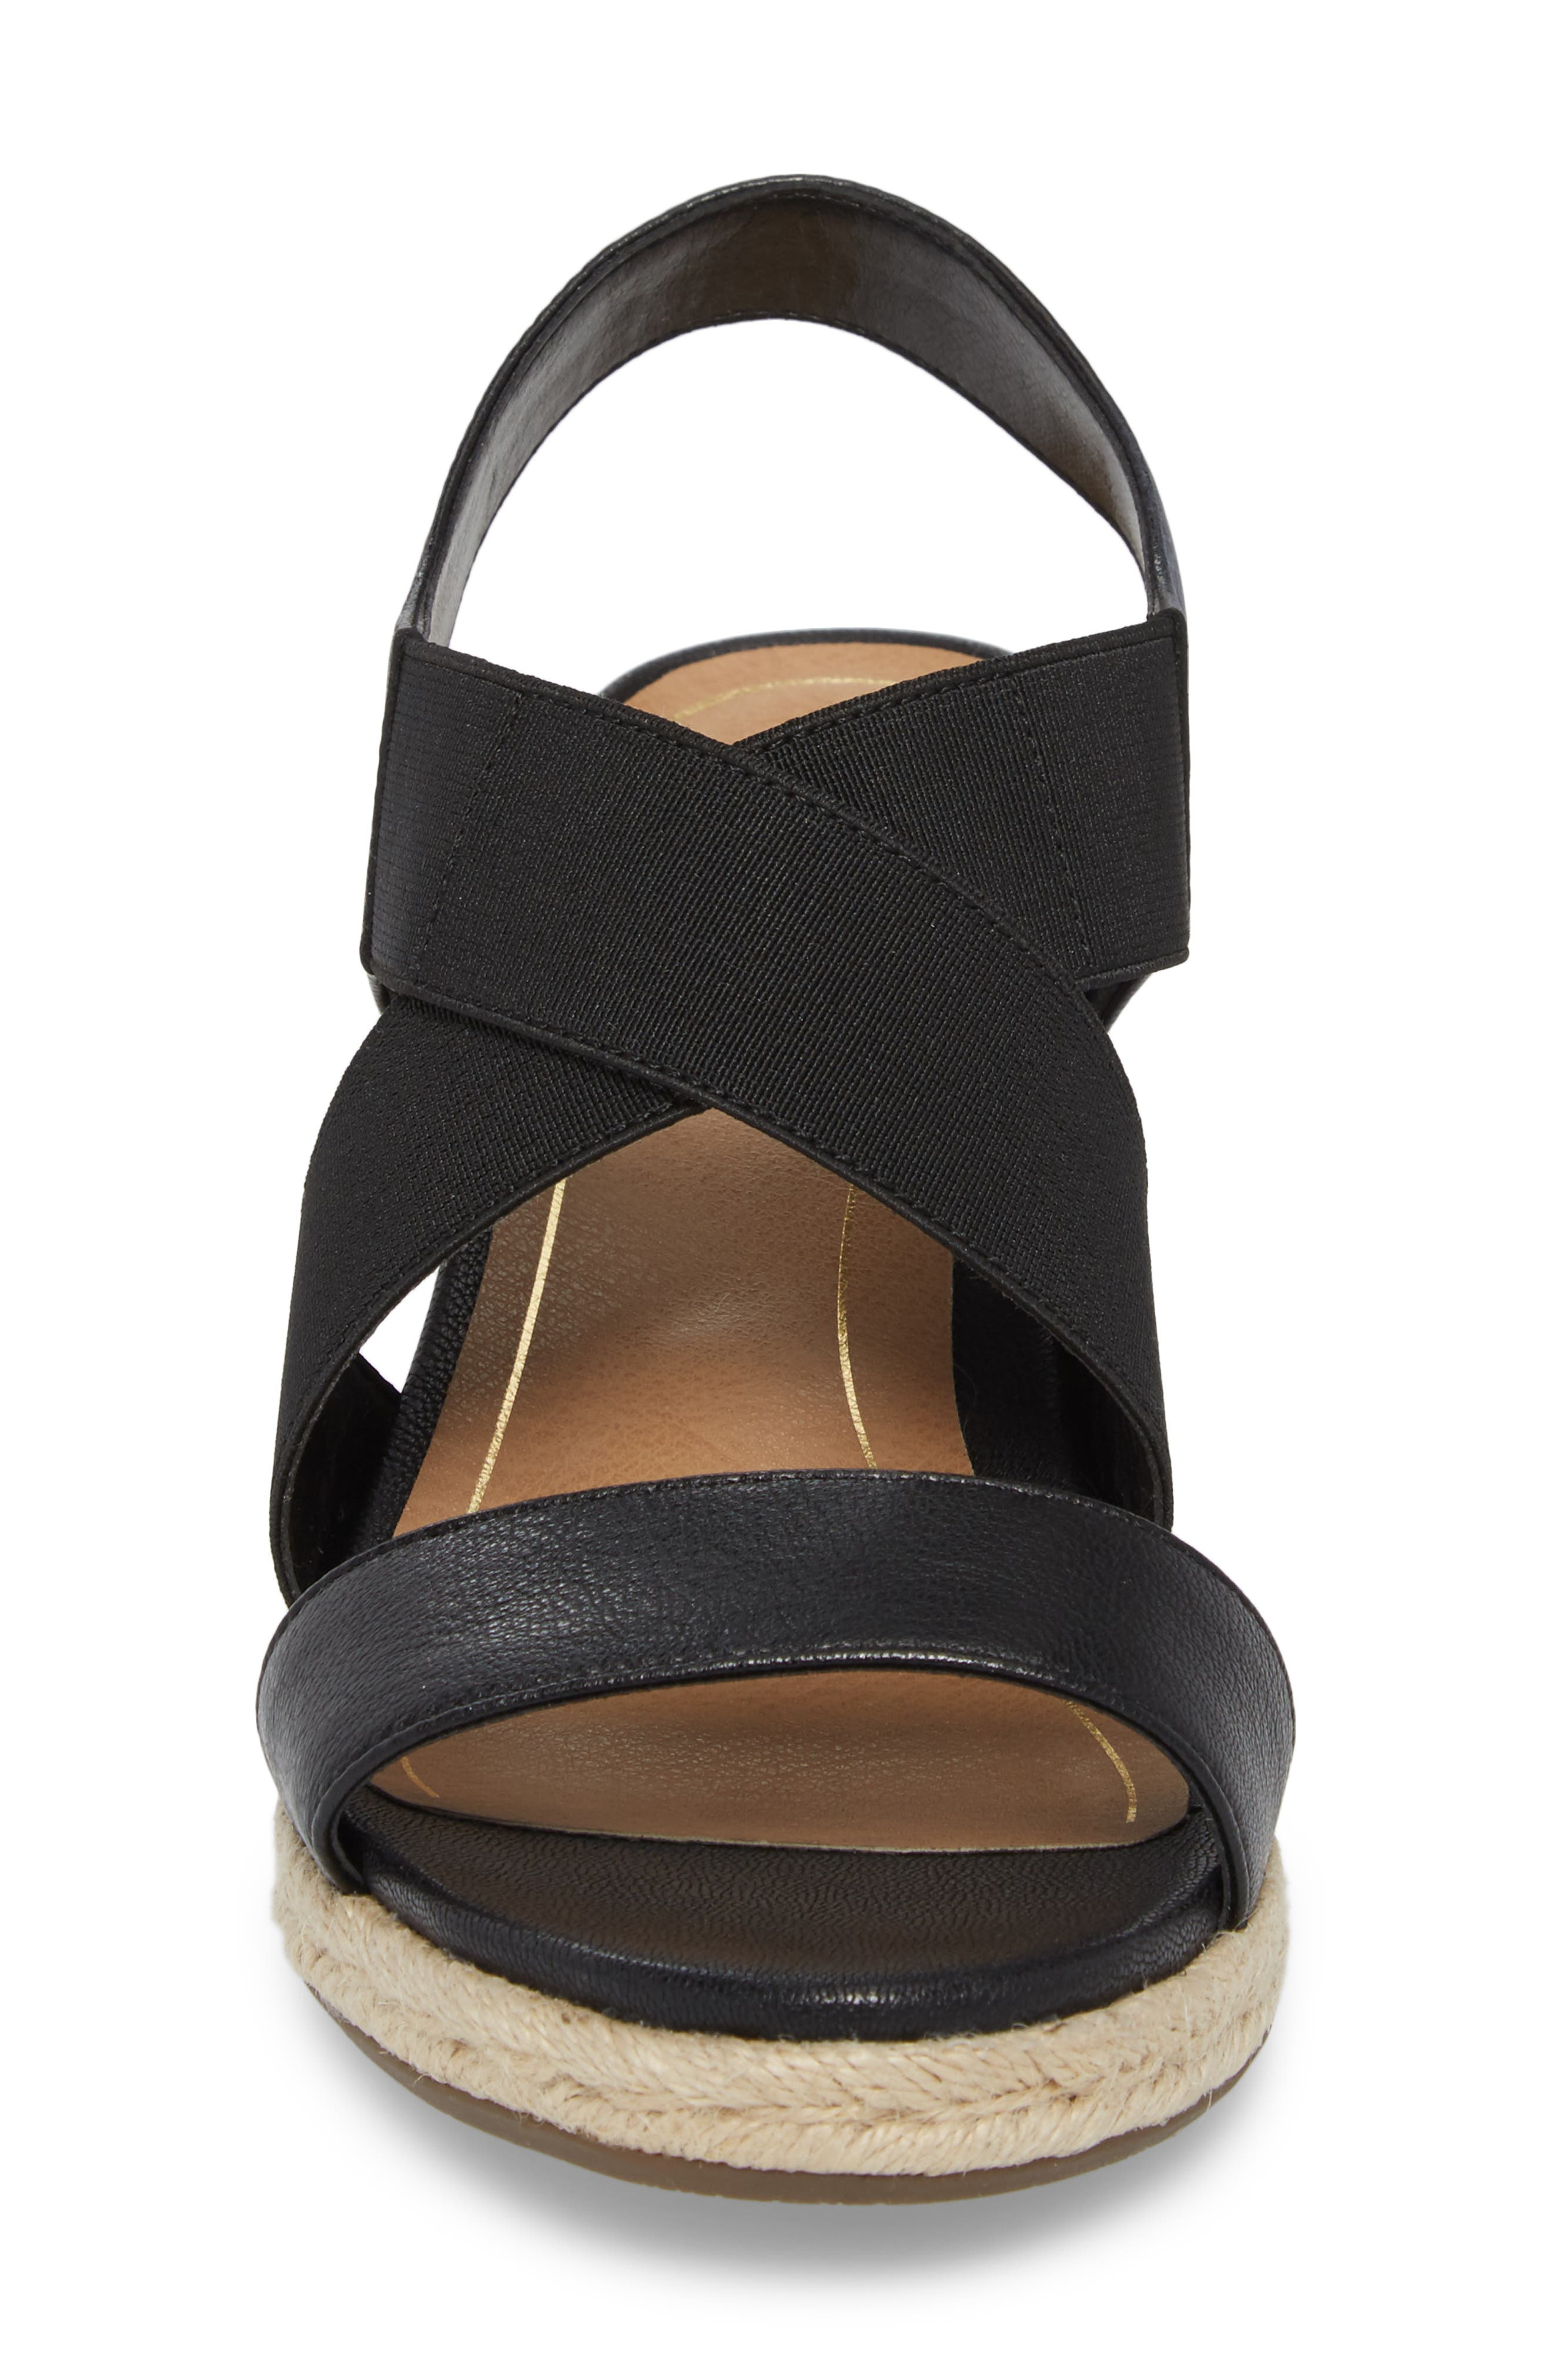 Ainsleigh Wedge Sandal,                             Alternate thumbnail 4, color,                             BLACK LEATHER